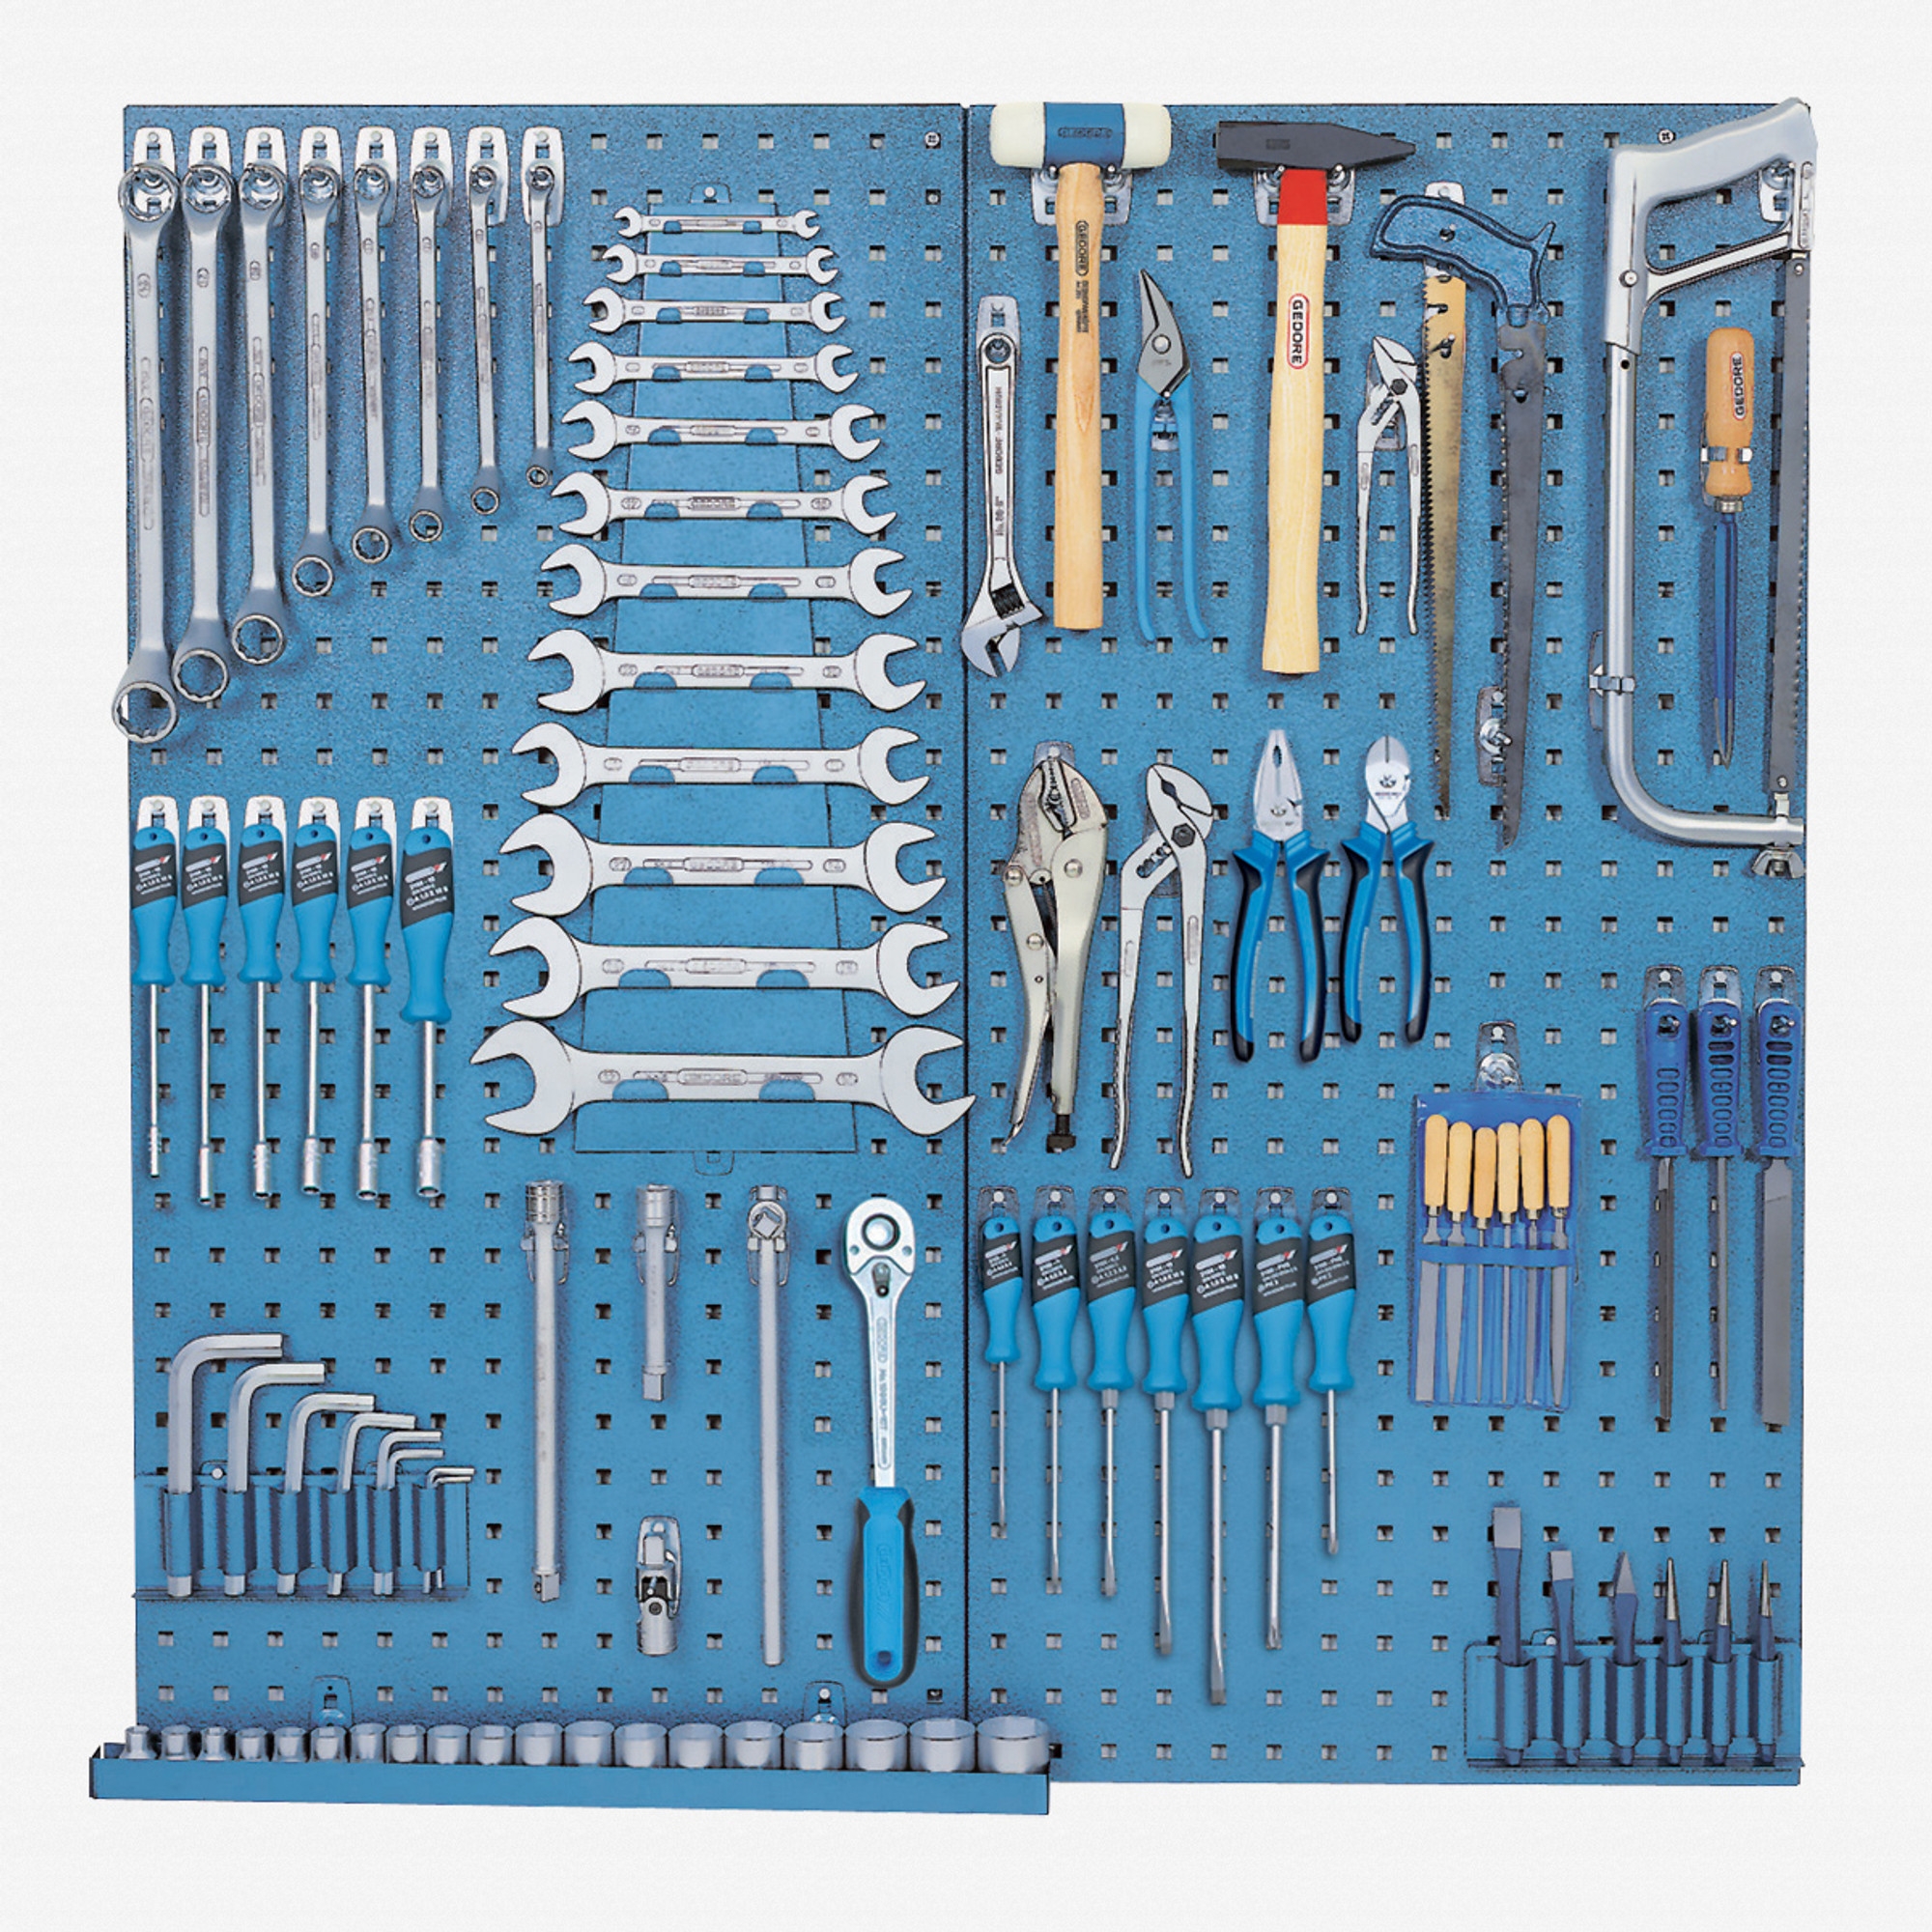 Gedore 1400 G-1450-2 Tool panel with assortment